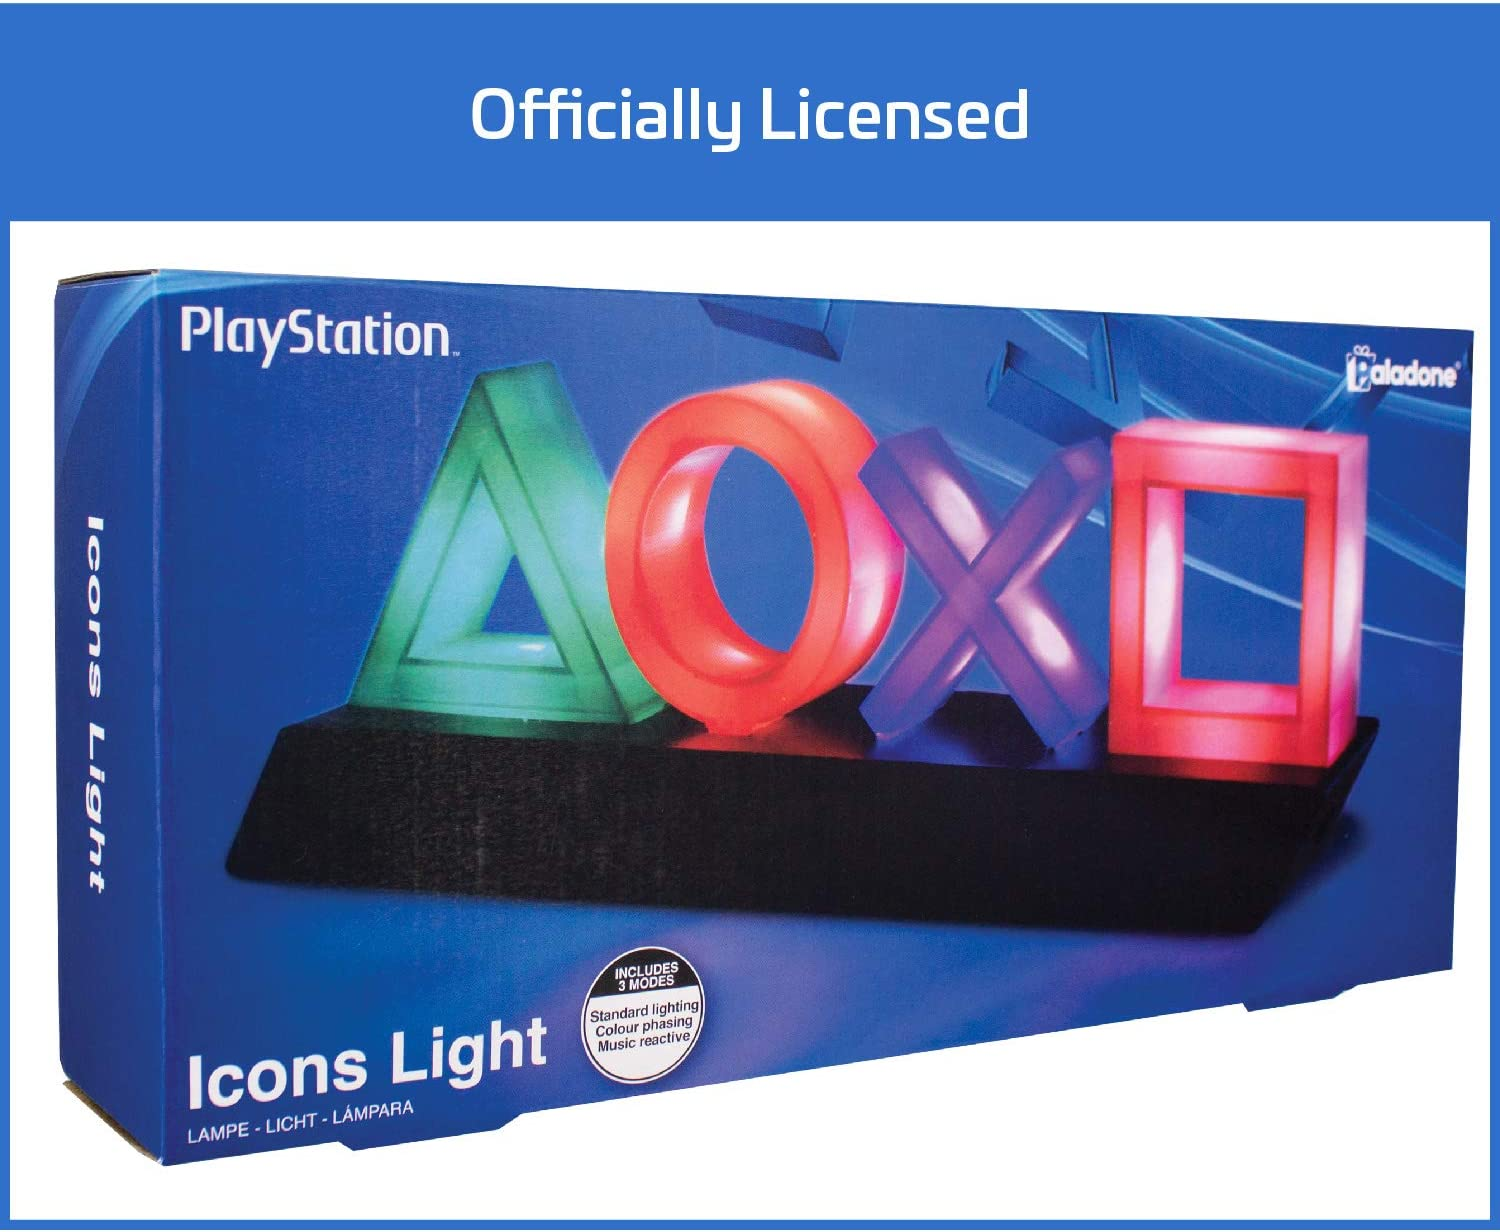 Amazon.com: Paladone Playstation Icons Light: Toys & Games